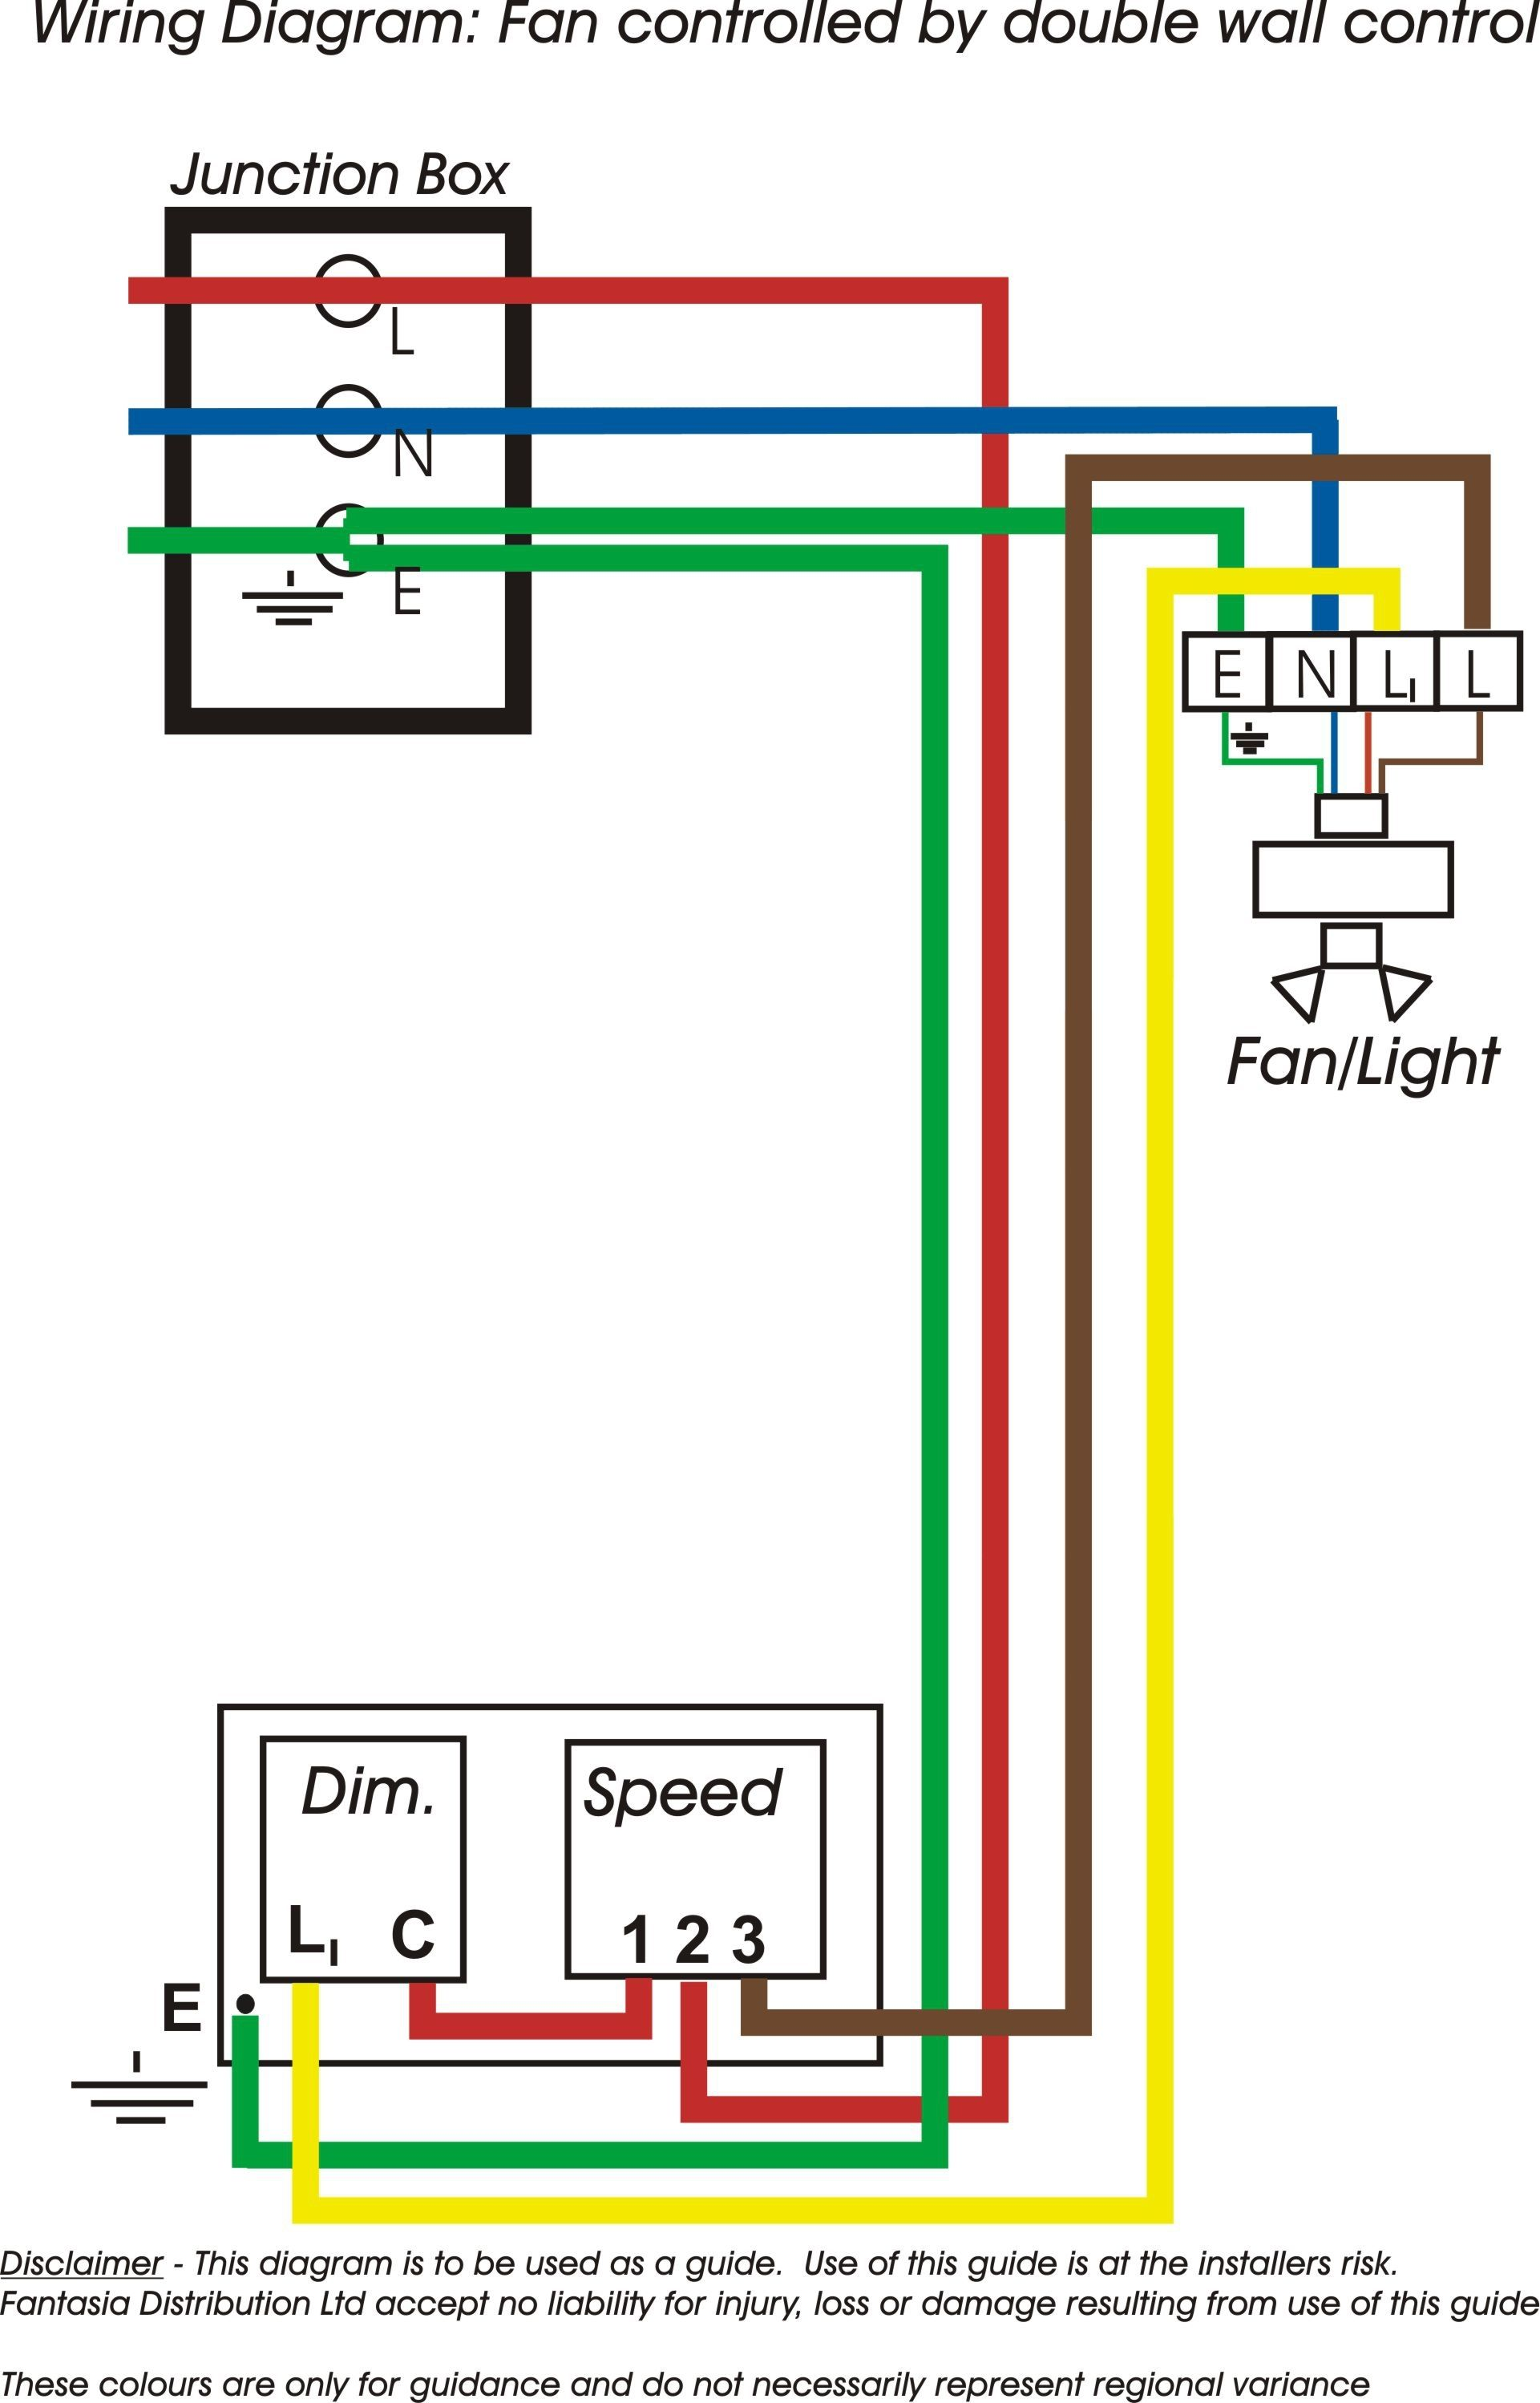 wiring a fan switch diagram wiring diagramdouble switch for ceiling fan and light electrical in 2019 wiring a fan switch diagram